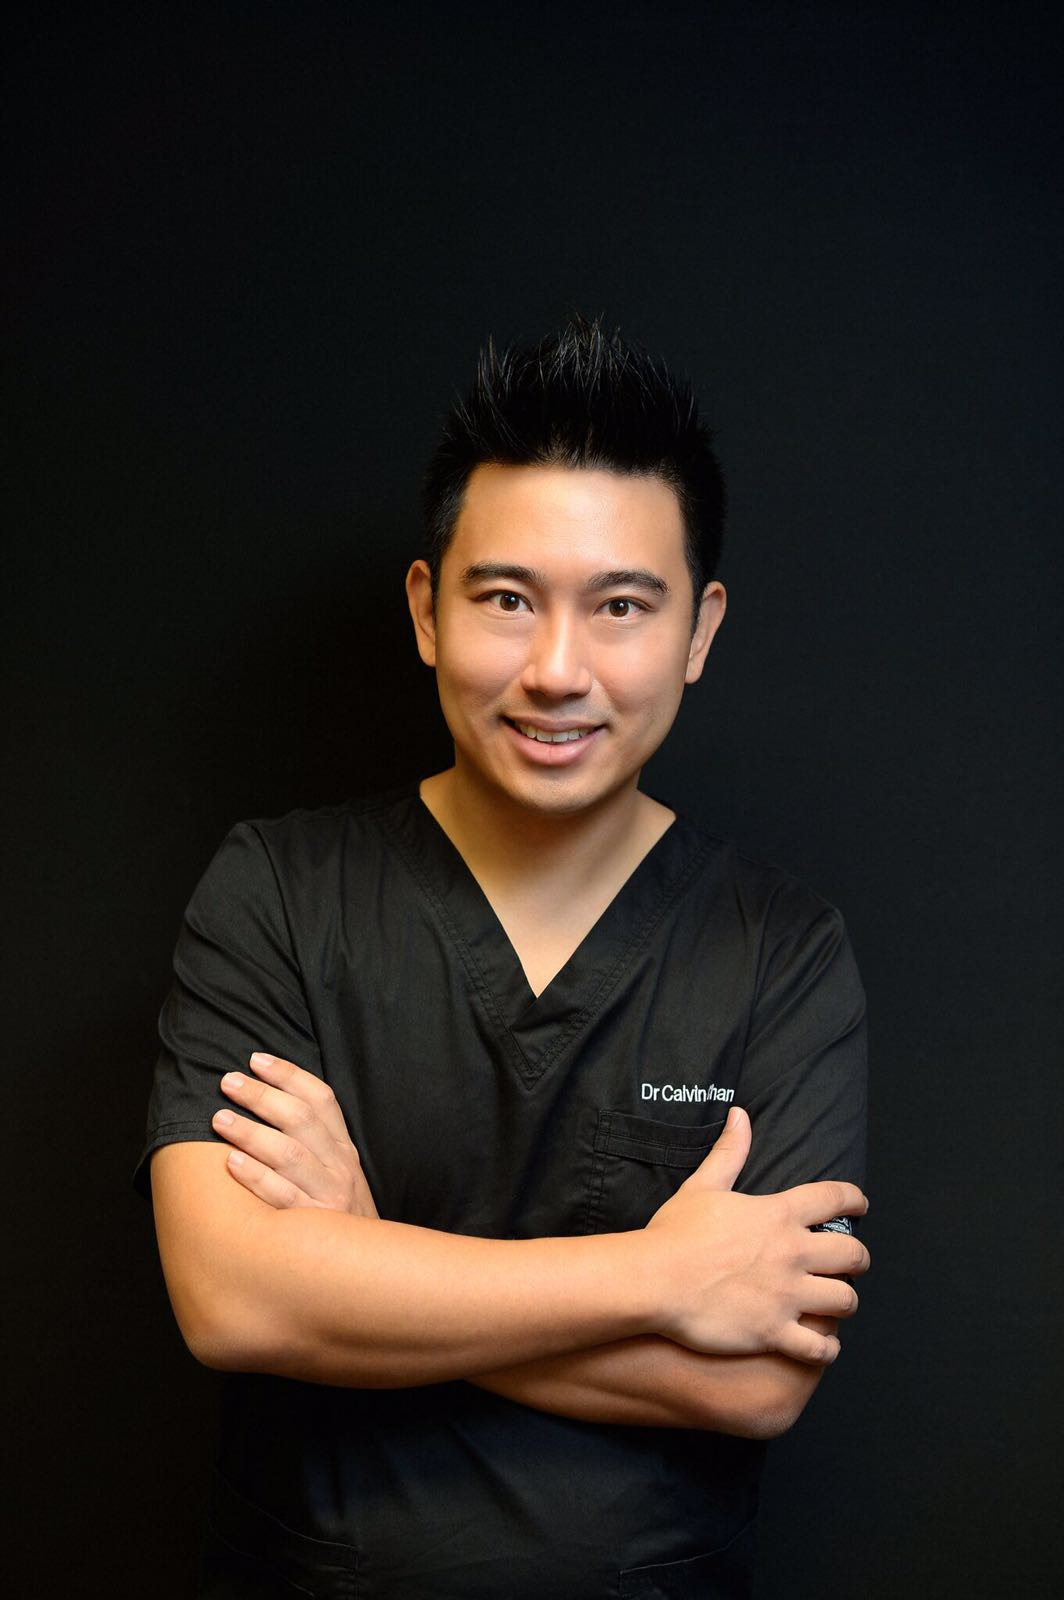 ABOUT US - Calvin Chan | Aesthetic & Laser Clinic